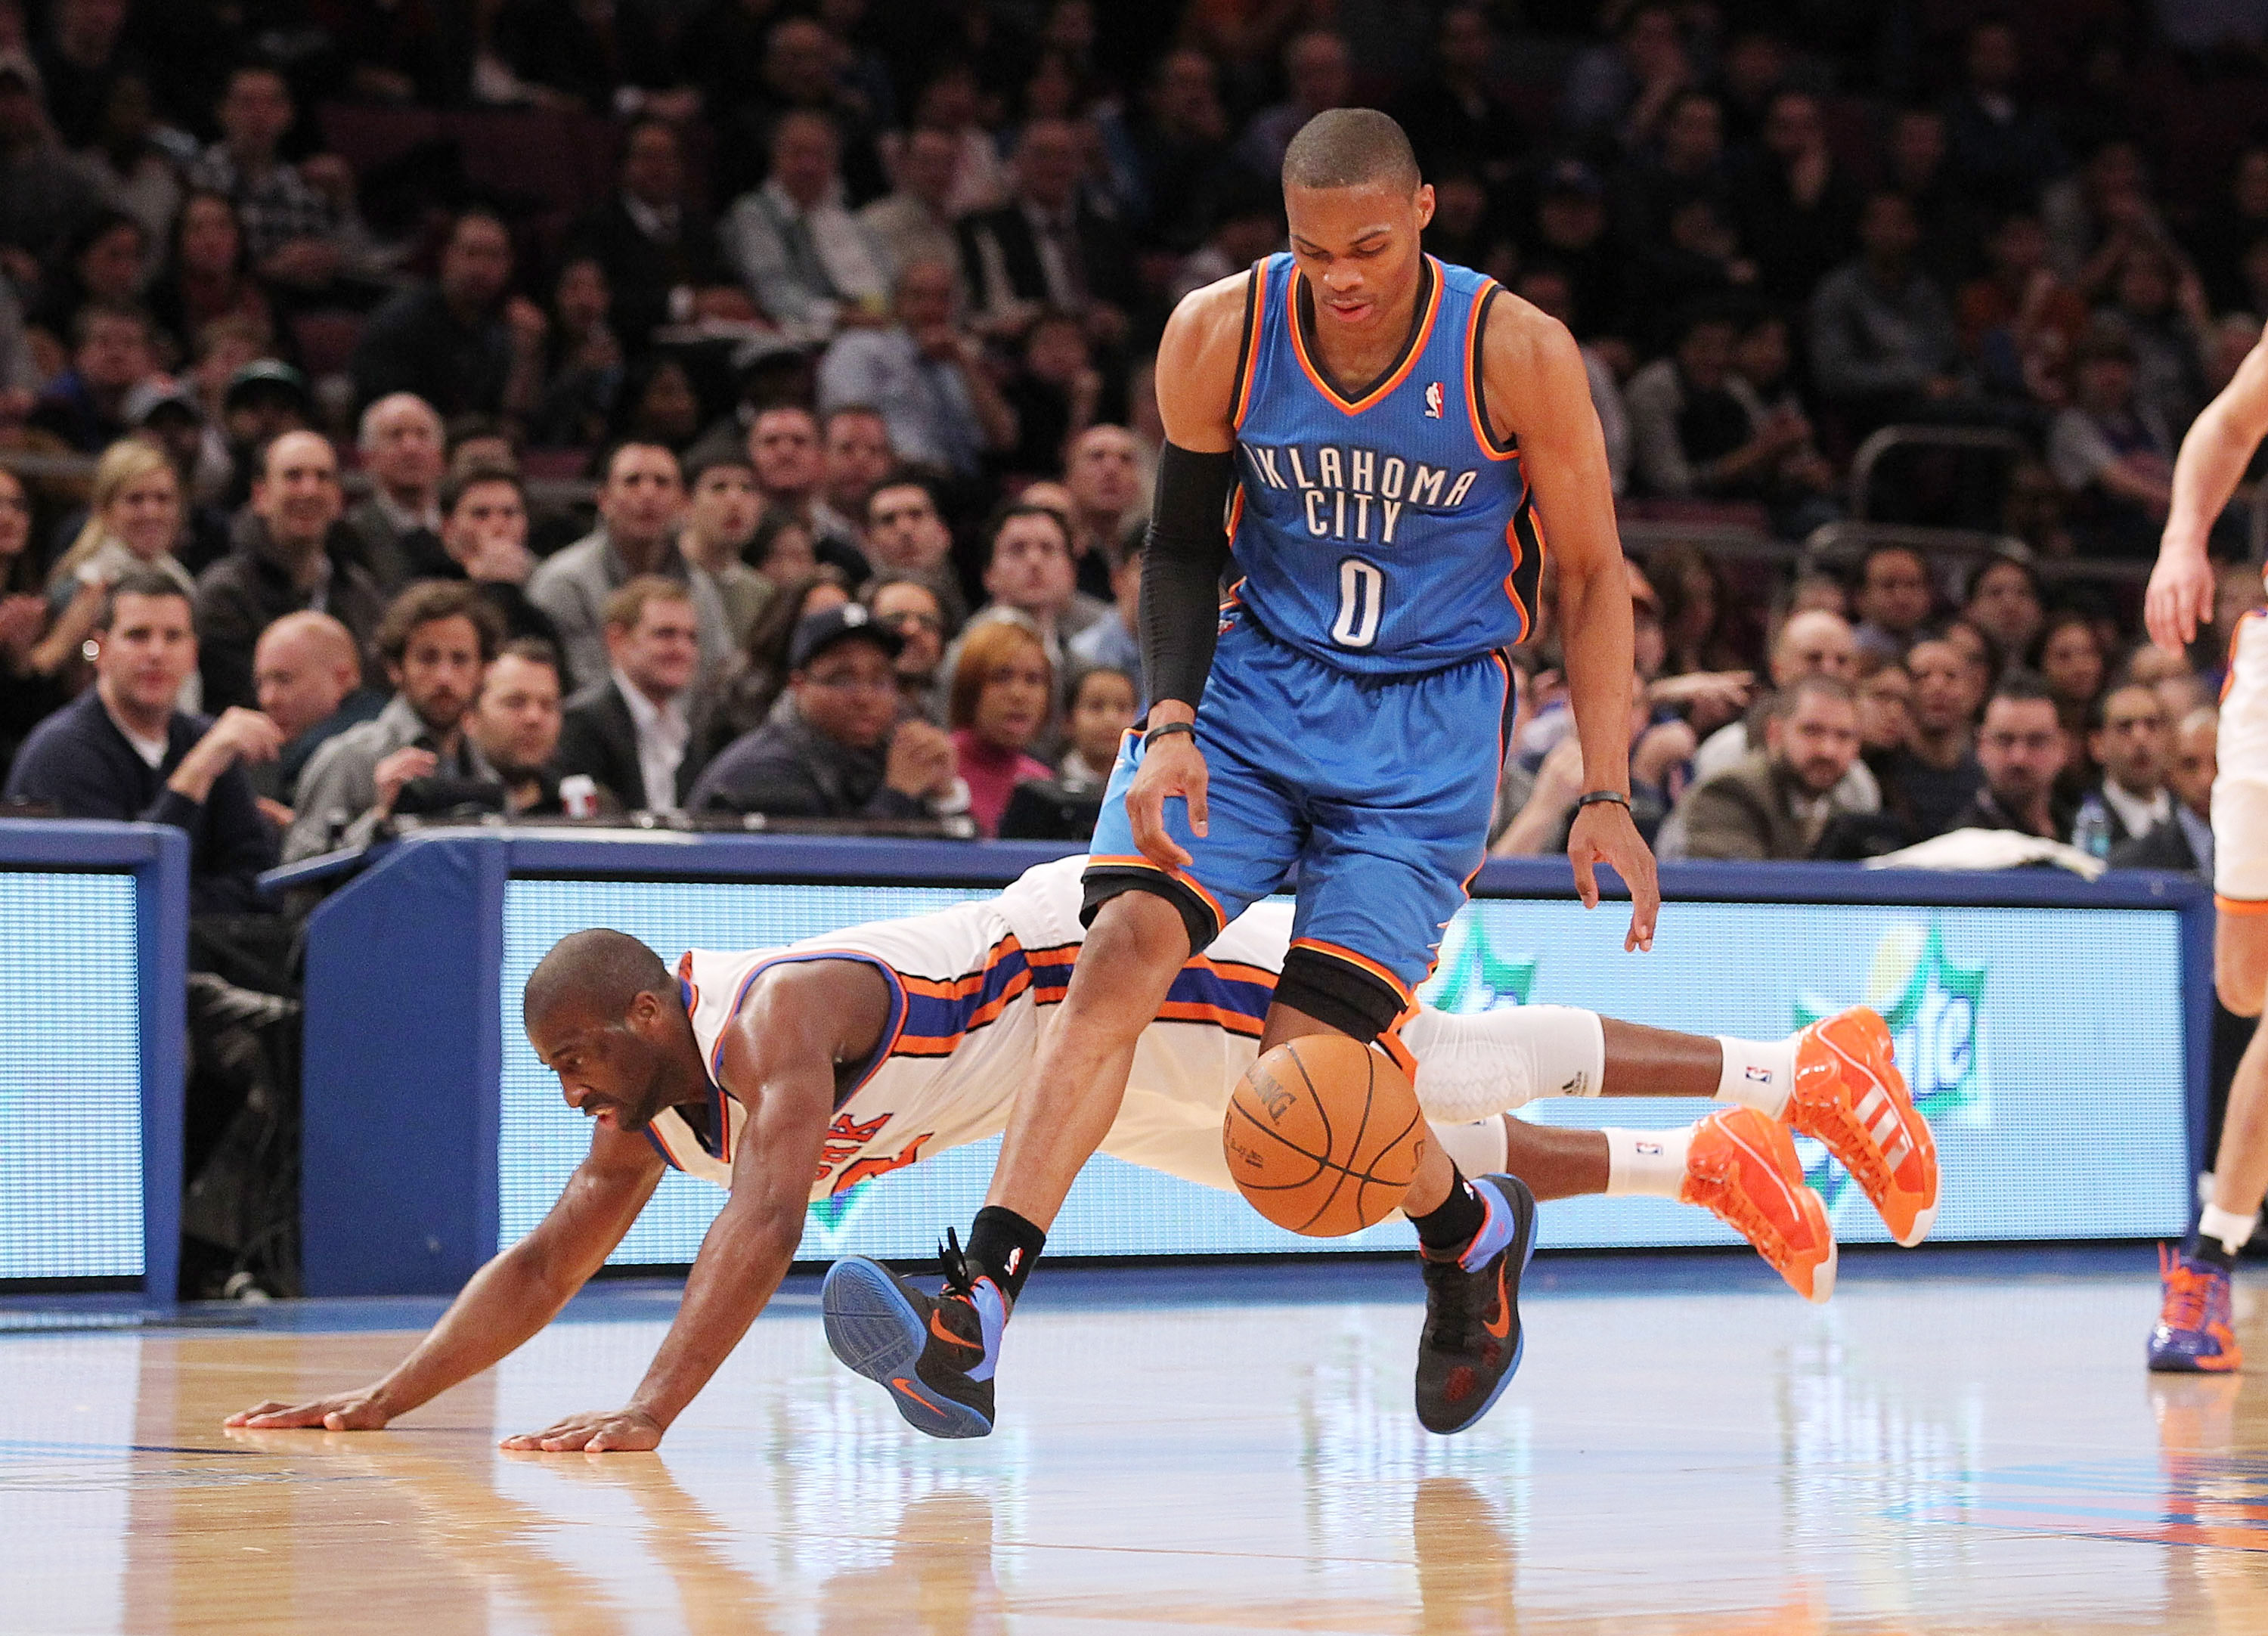 NEW YORK, NY - DECEMBER 22:  Raymond Felton #2 of the New York Knicks collides with Russell Westbrook #0 of the Oklahoma City Thunder at Madison Square Garden on December 22, 2010 in New York City.   NOTE TO USER: User expressly acknowledges and agrees th